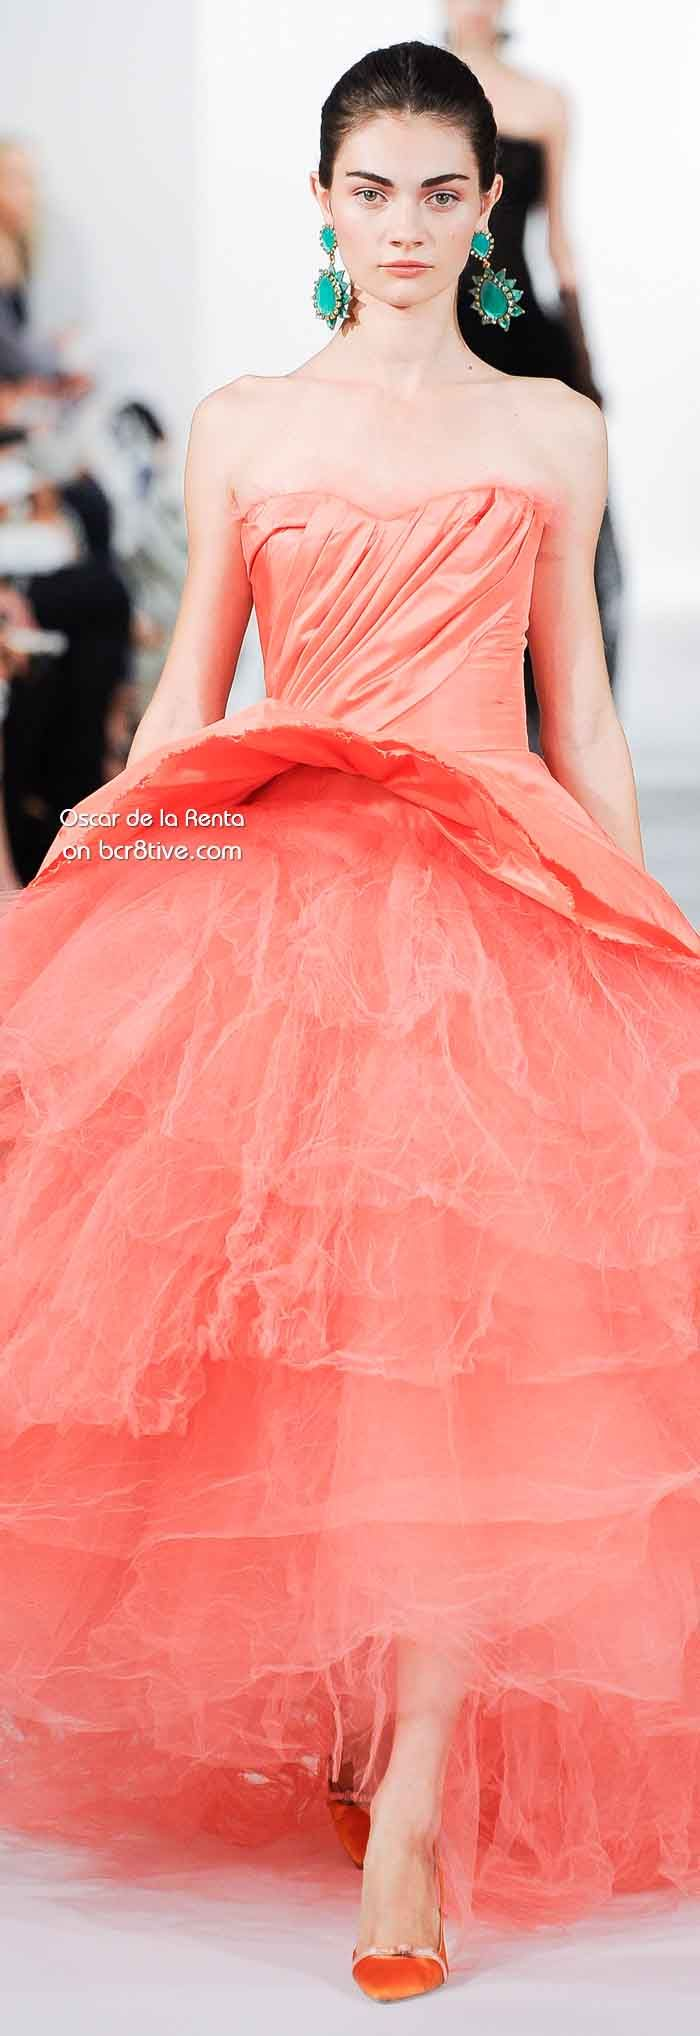 329 best Vestidos de Fiesta Cortos y Largos images on Pinterest ...